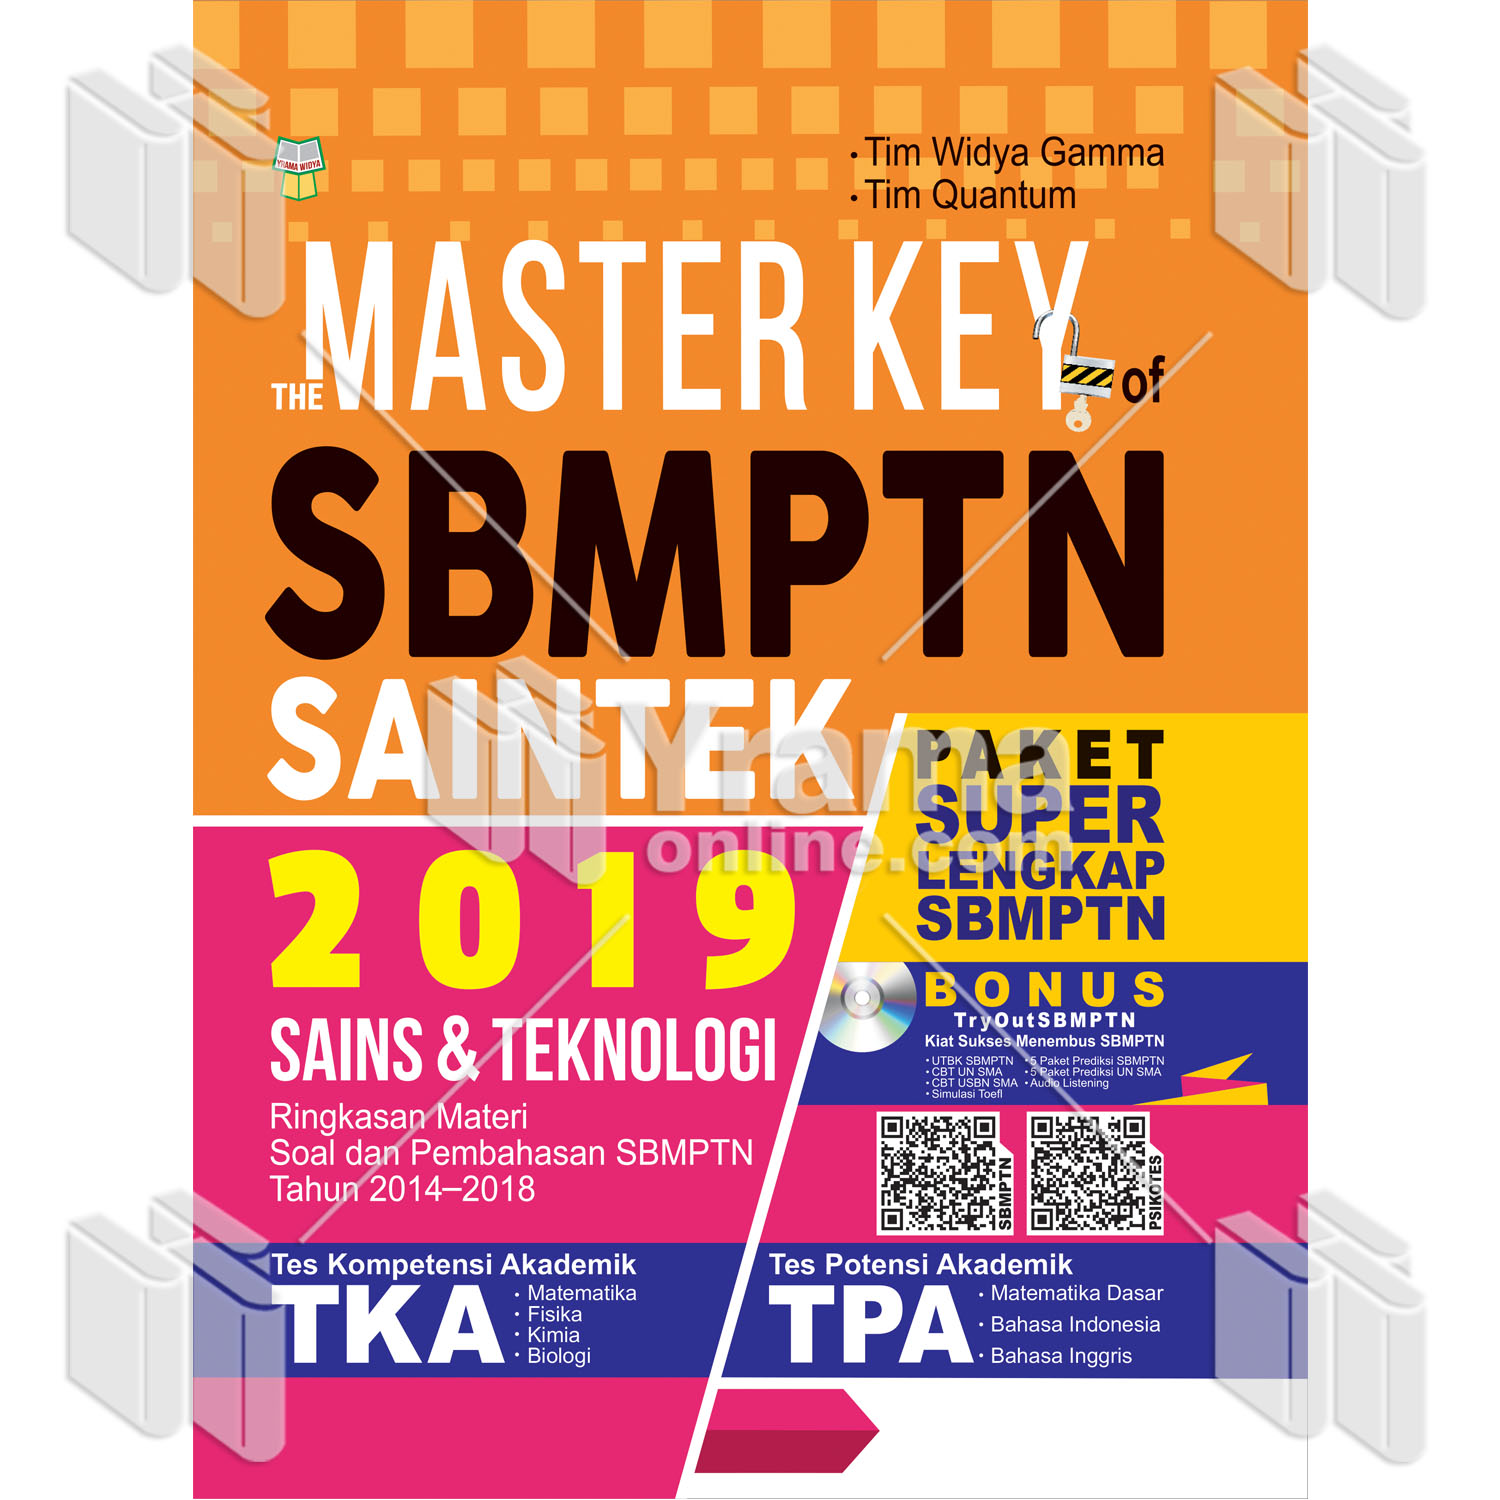 THE MASTER KEY OF SBMTPN SAINTEK 2019